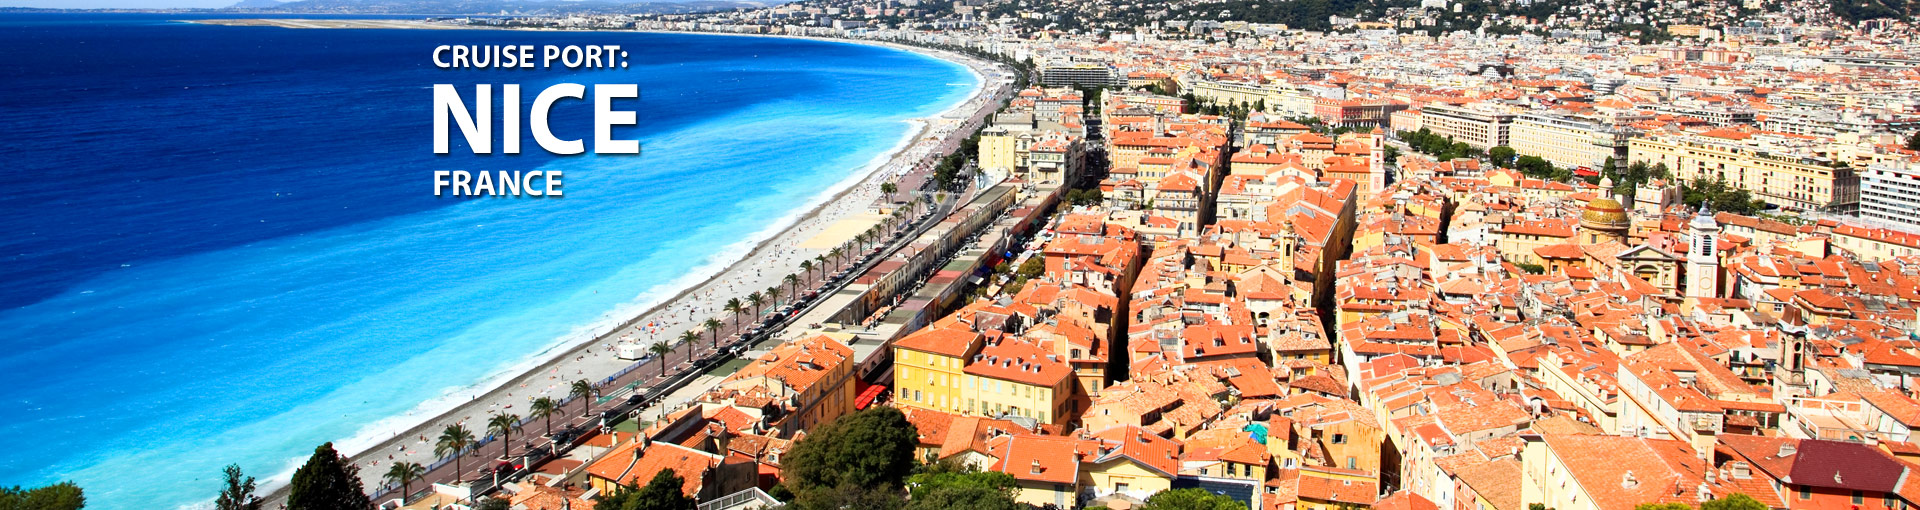 Cruises from Nice, France